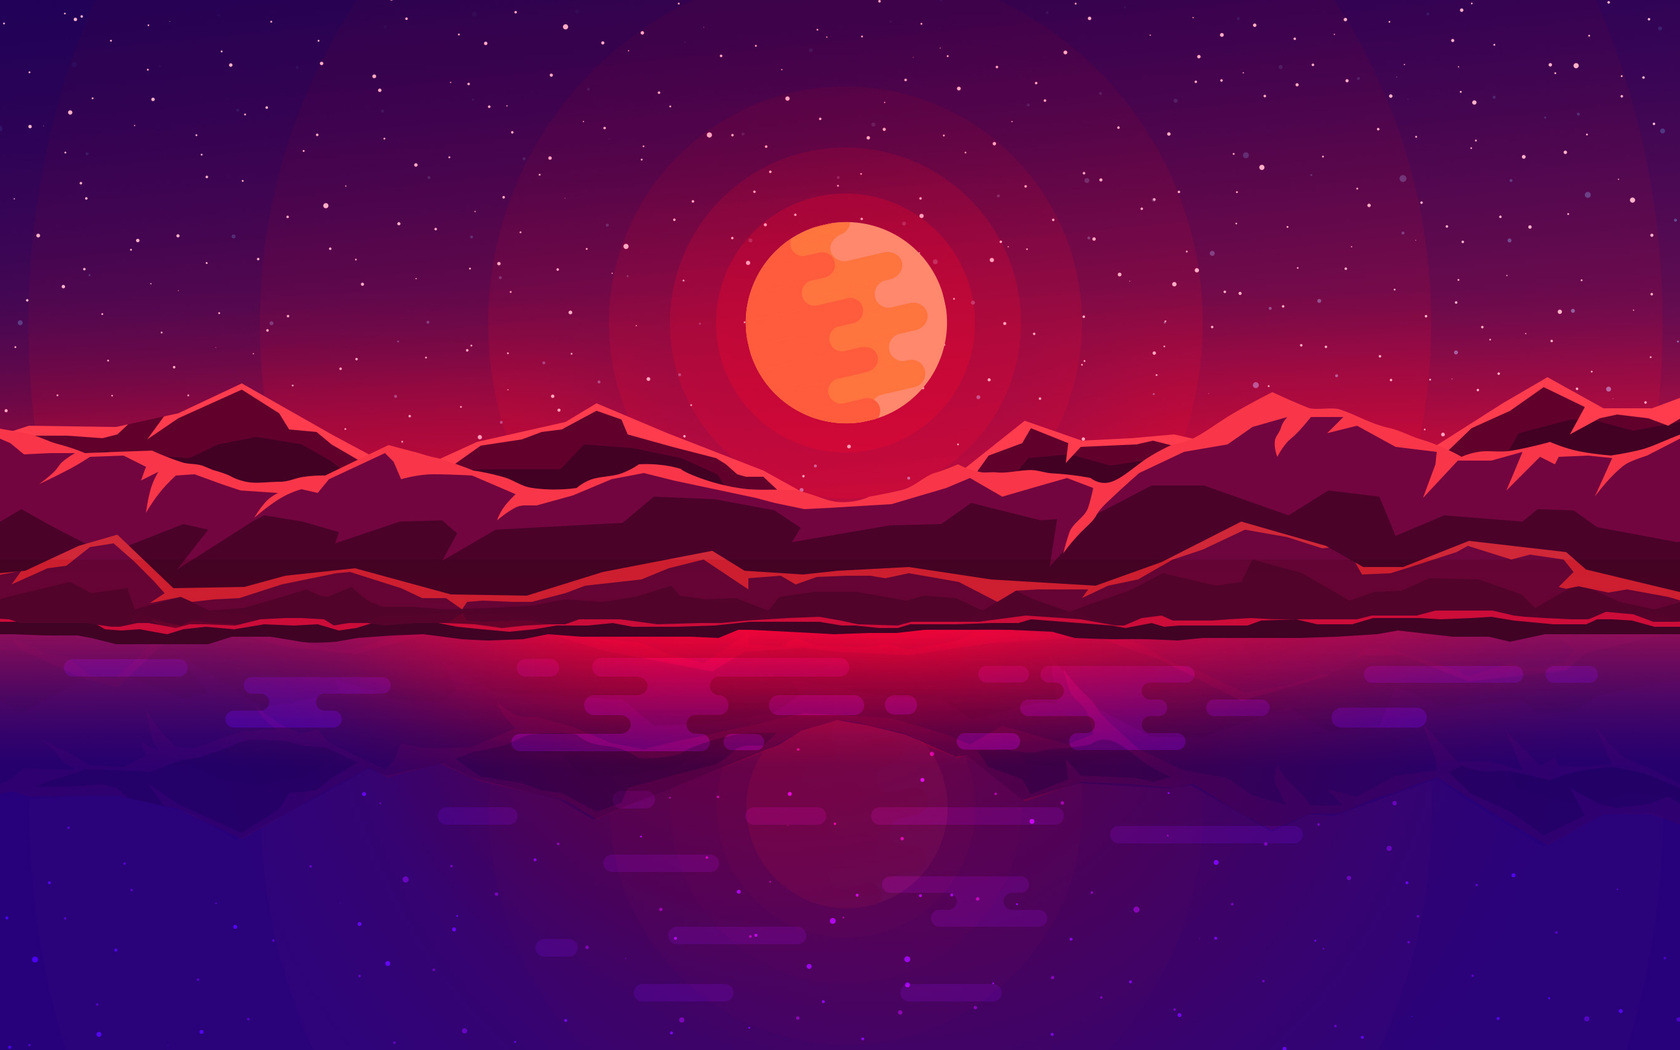 1680x1050 Moon Rays Red Space Sky Abstract Mountains 1680x1050